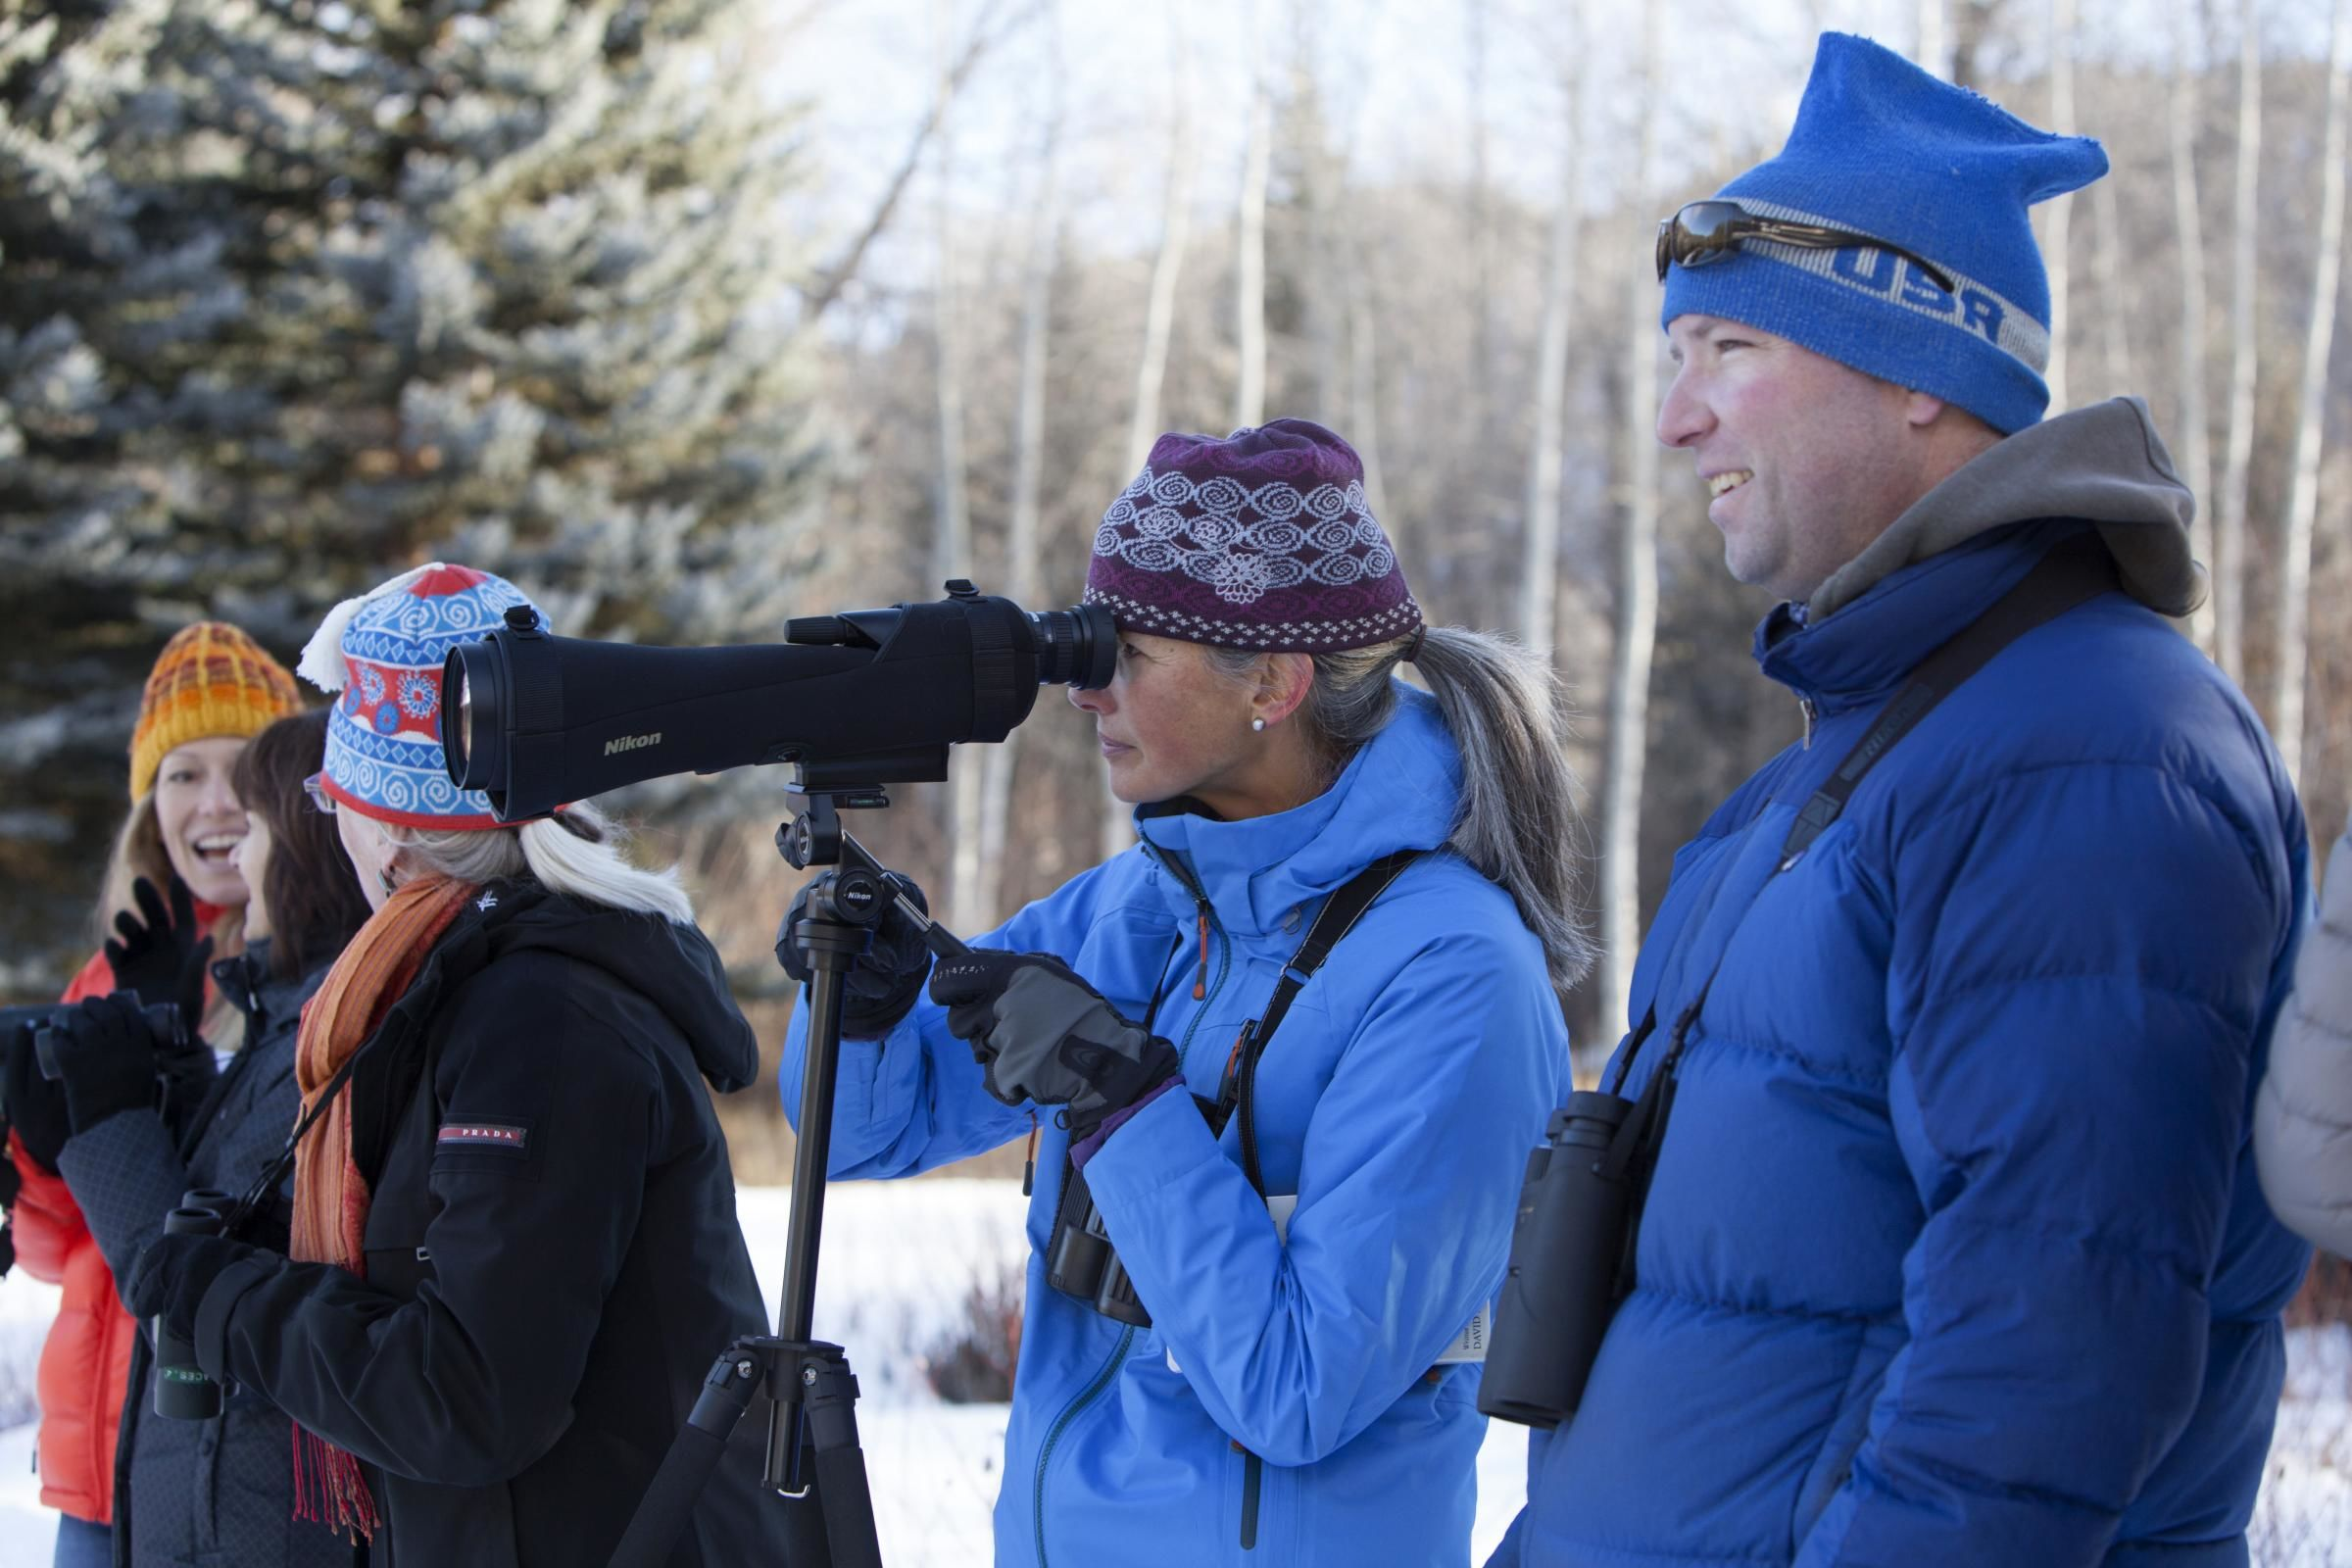 for more cbc experience join the mid valley audobon christmas bird count hosted by roaring fork audobon on saturday december 16 contact ton mcconnell for - Audubon Christmas Bird Count